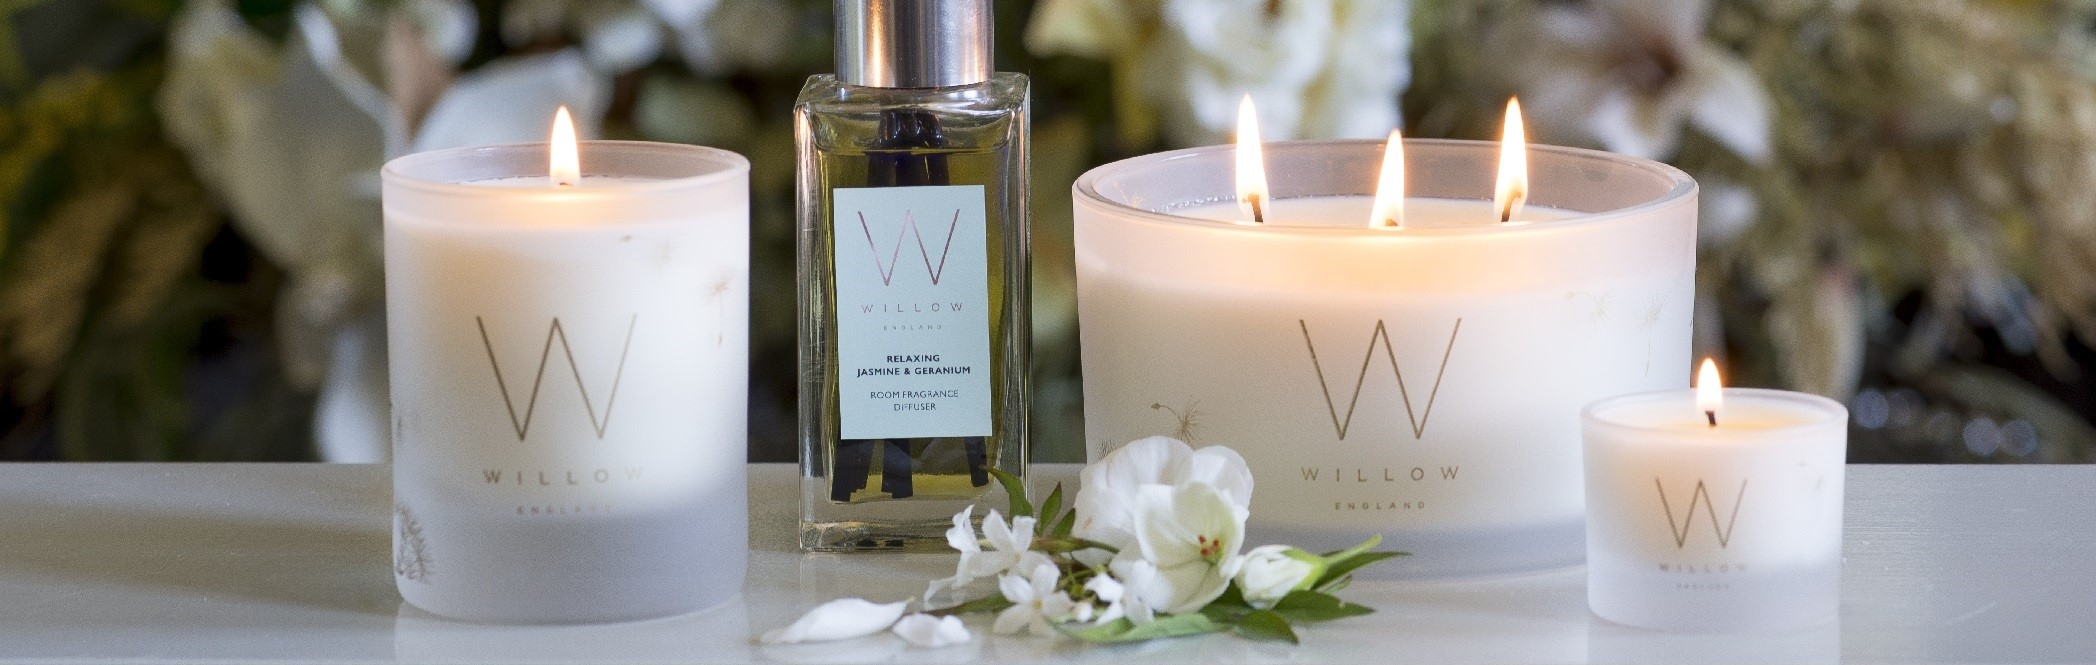 Room Fragrance Diffusers